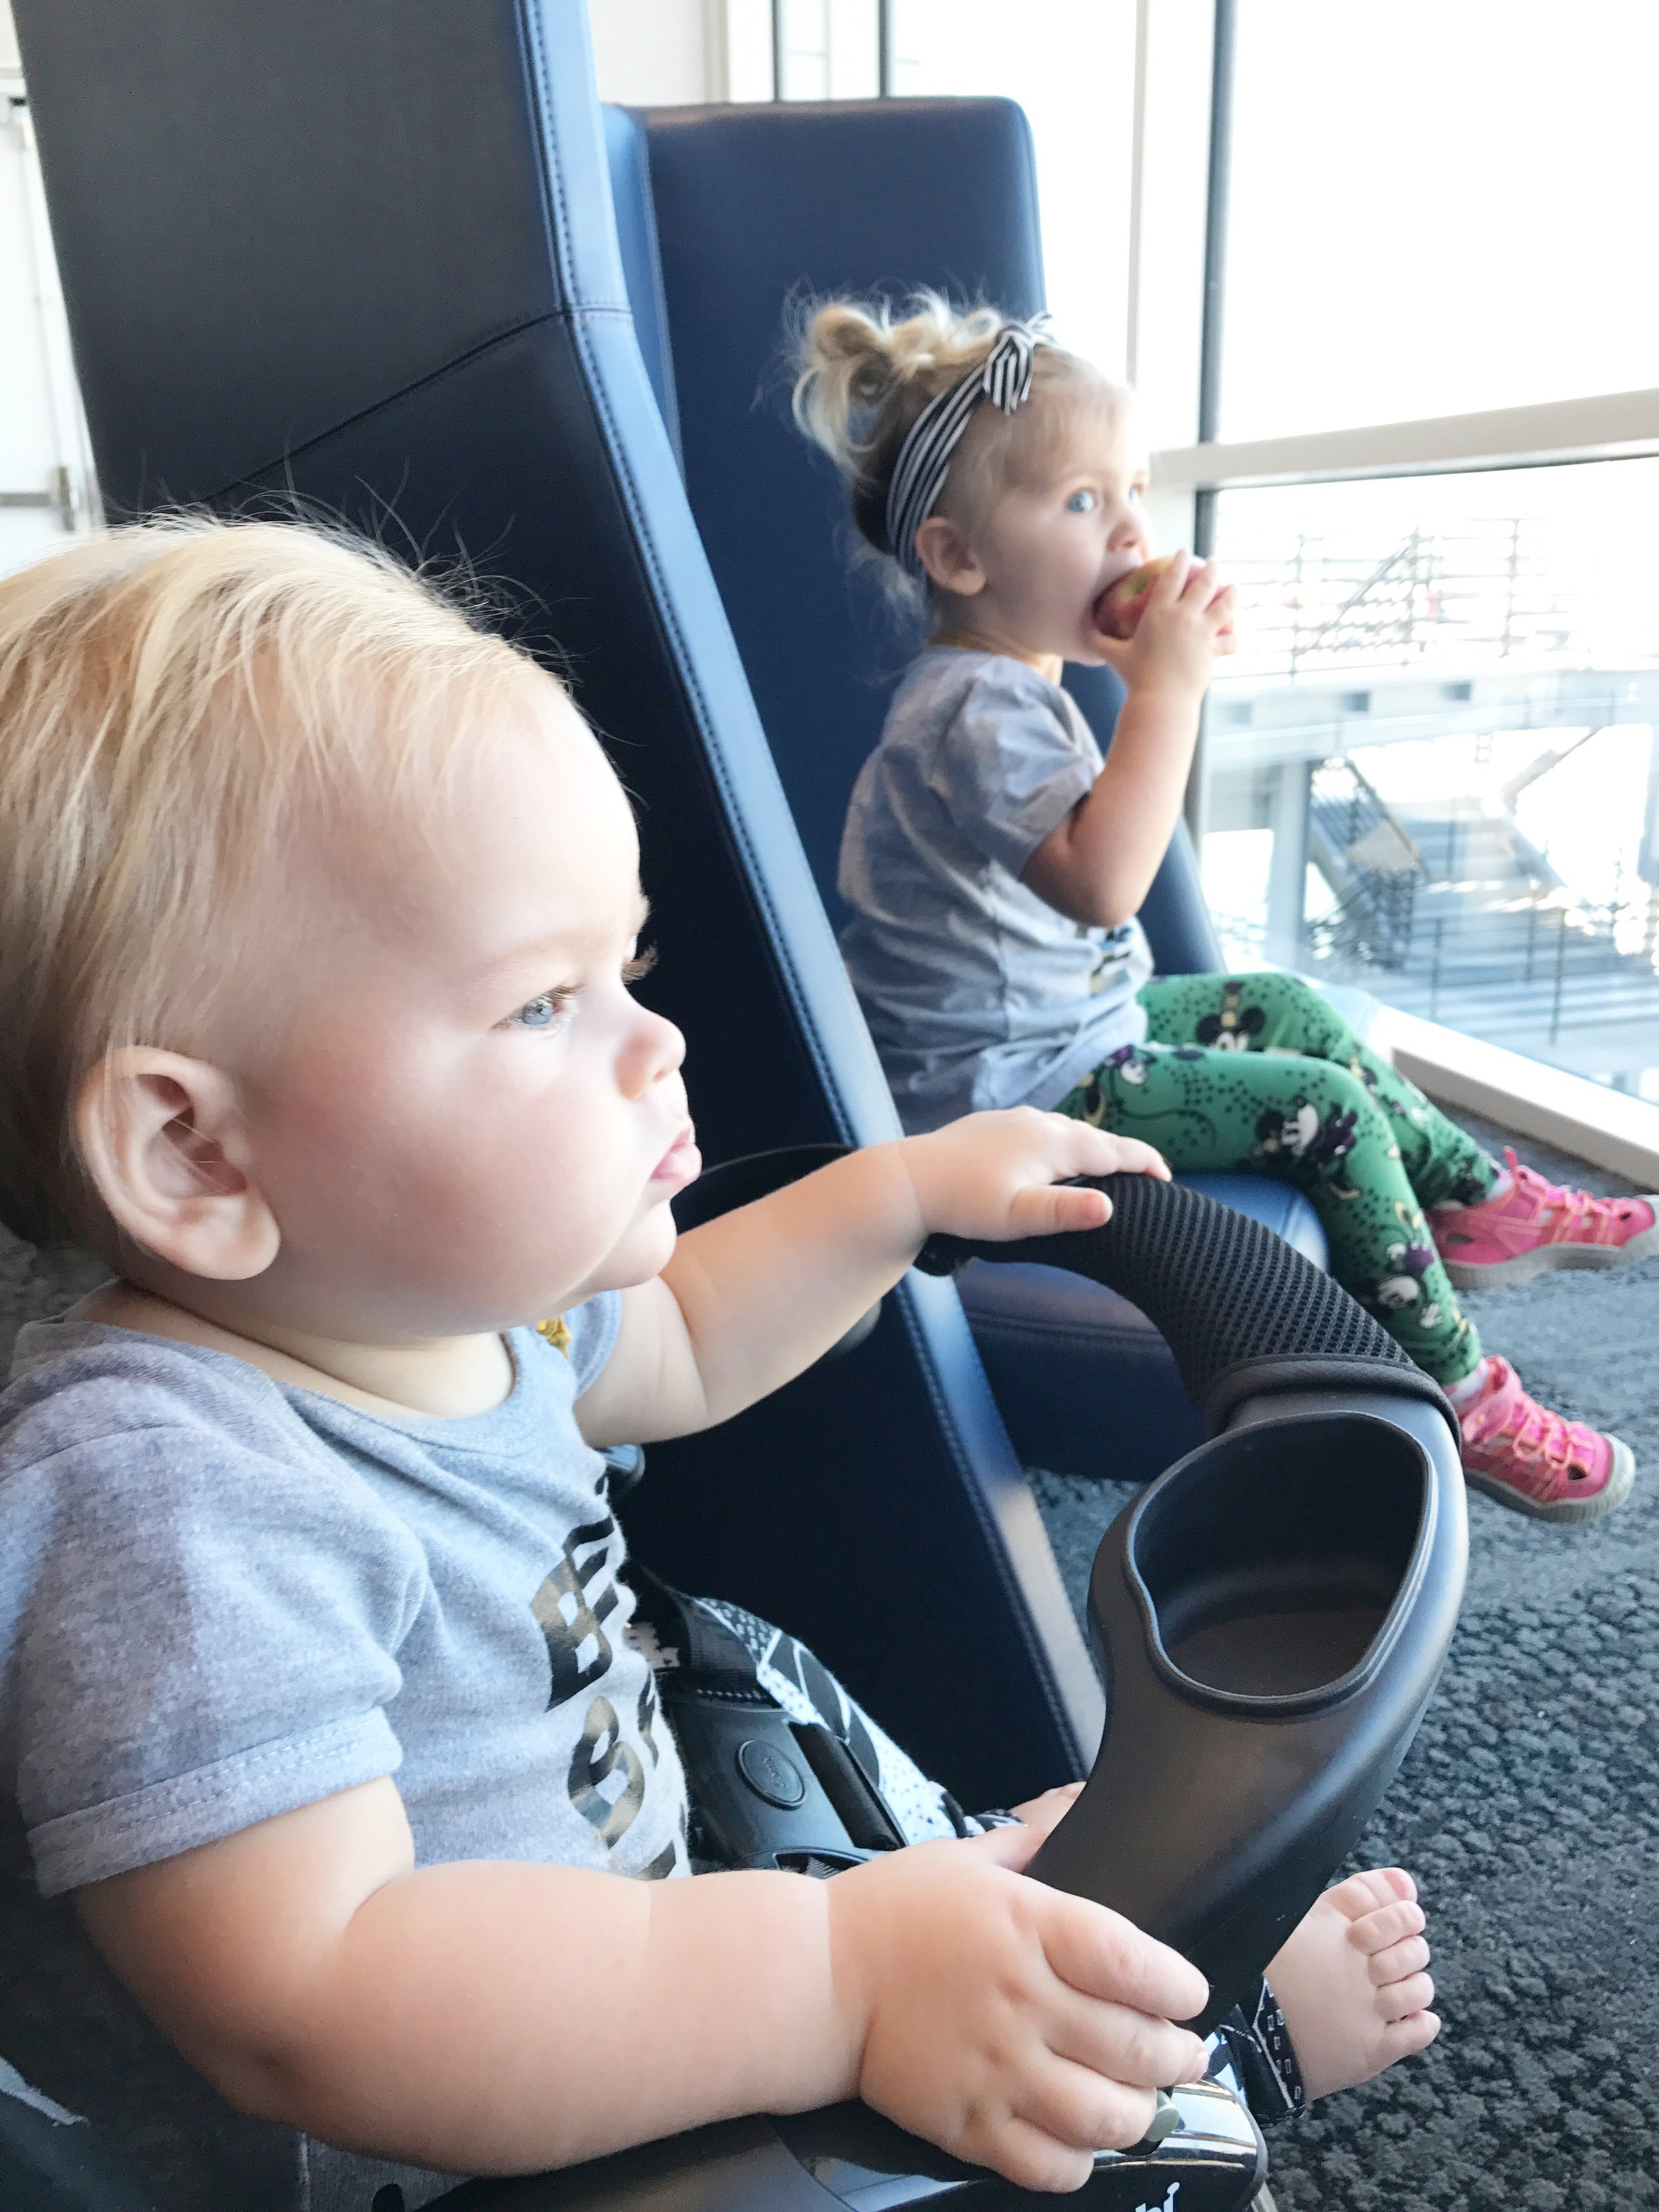 The baby nomads are enjoying some privacy seats, free snacks and great views from the floor to ceiling windows.